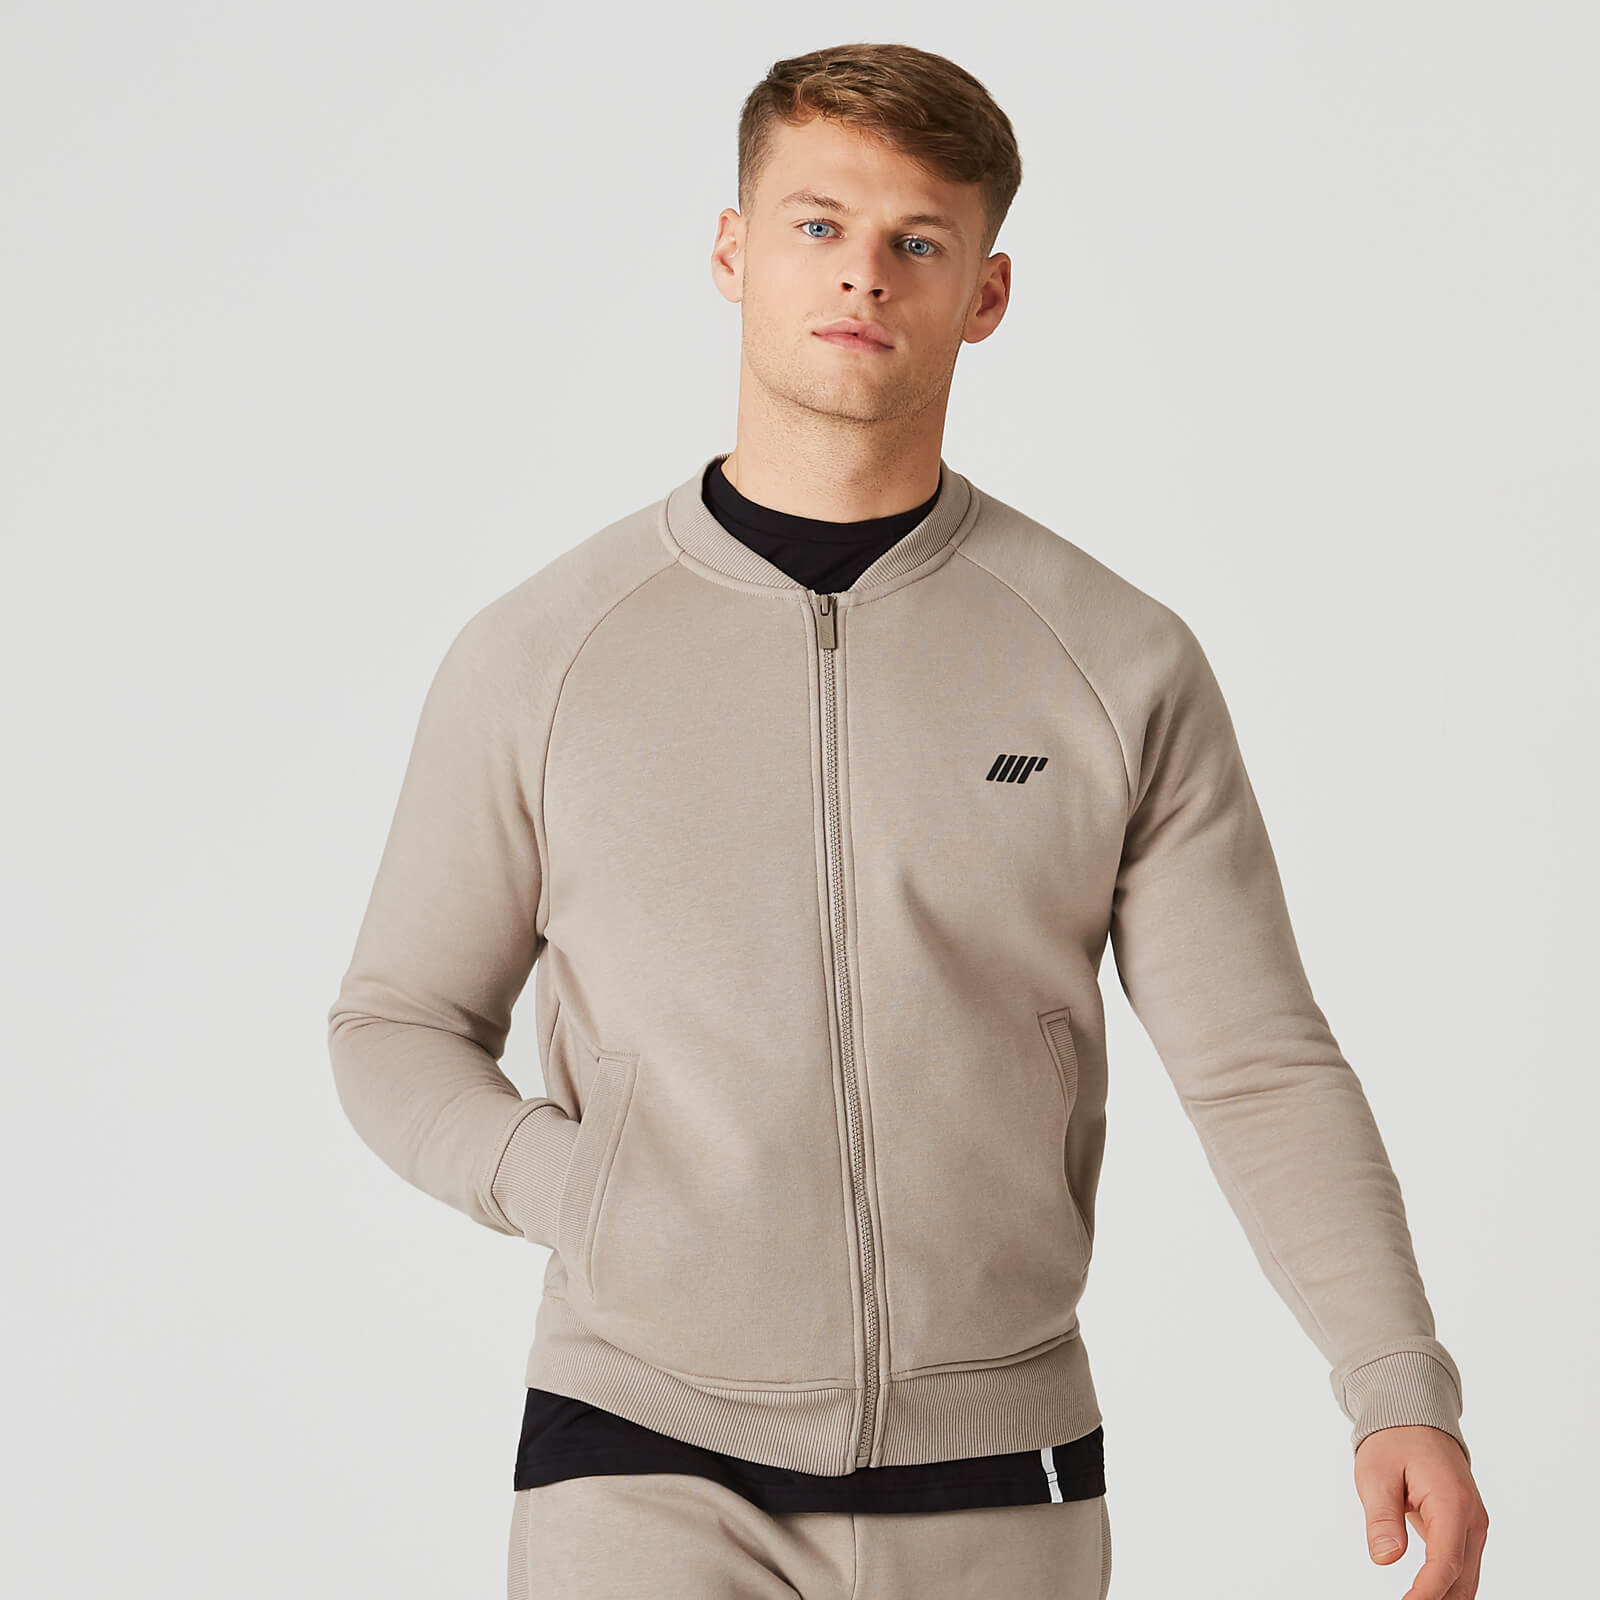 c7ae4175ecd Tru-Fit Bomber 2.0 - Taupe